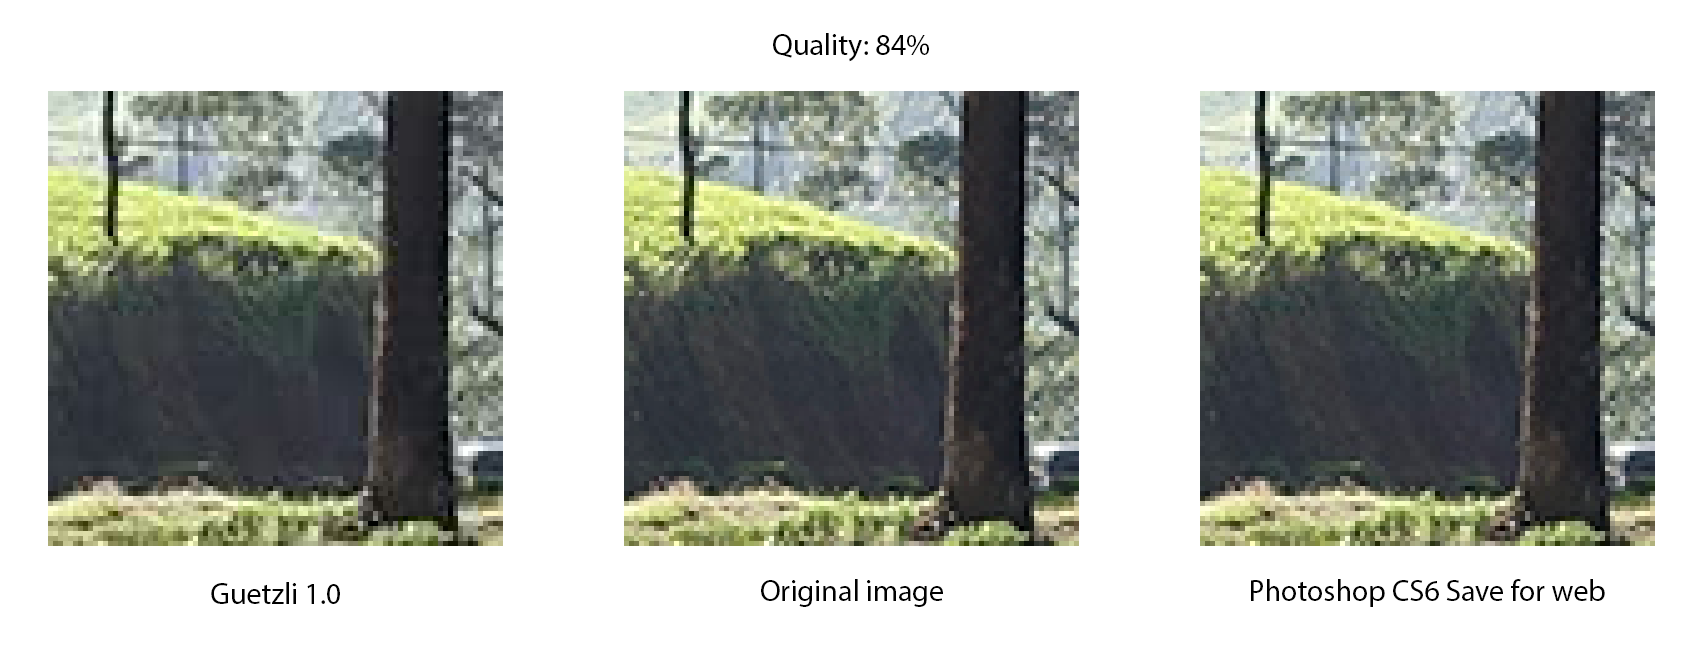 20 - 30% Better JPEG compression from Google? My Test